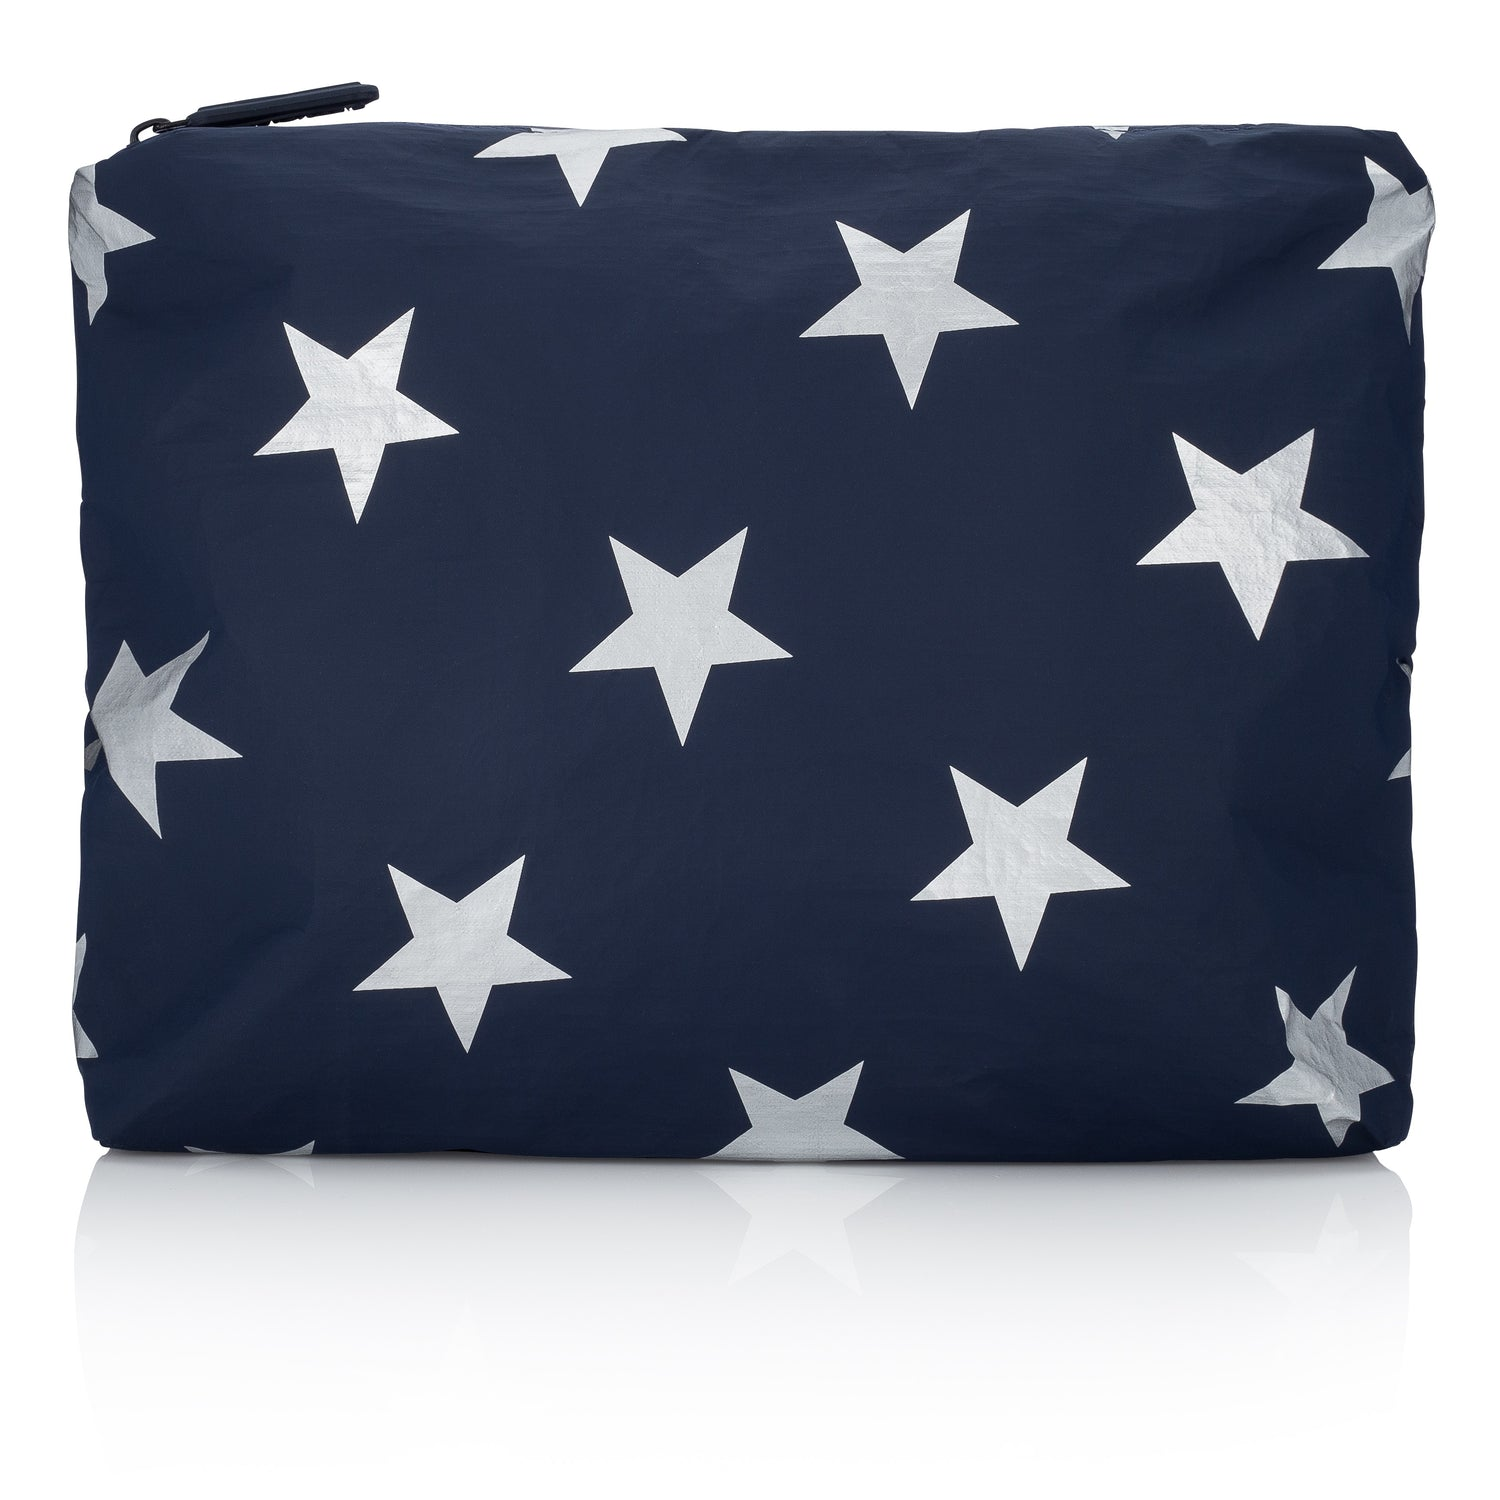 Medium Pack - Navy HLT Collection with Silver Stars